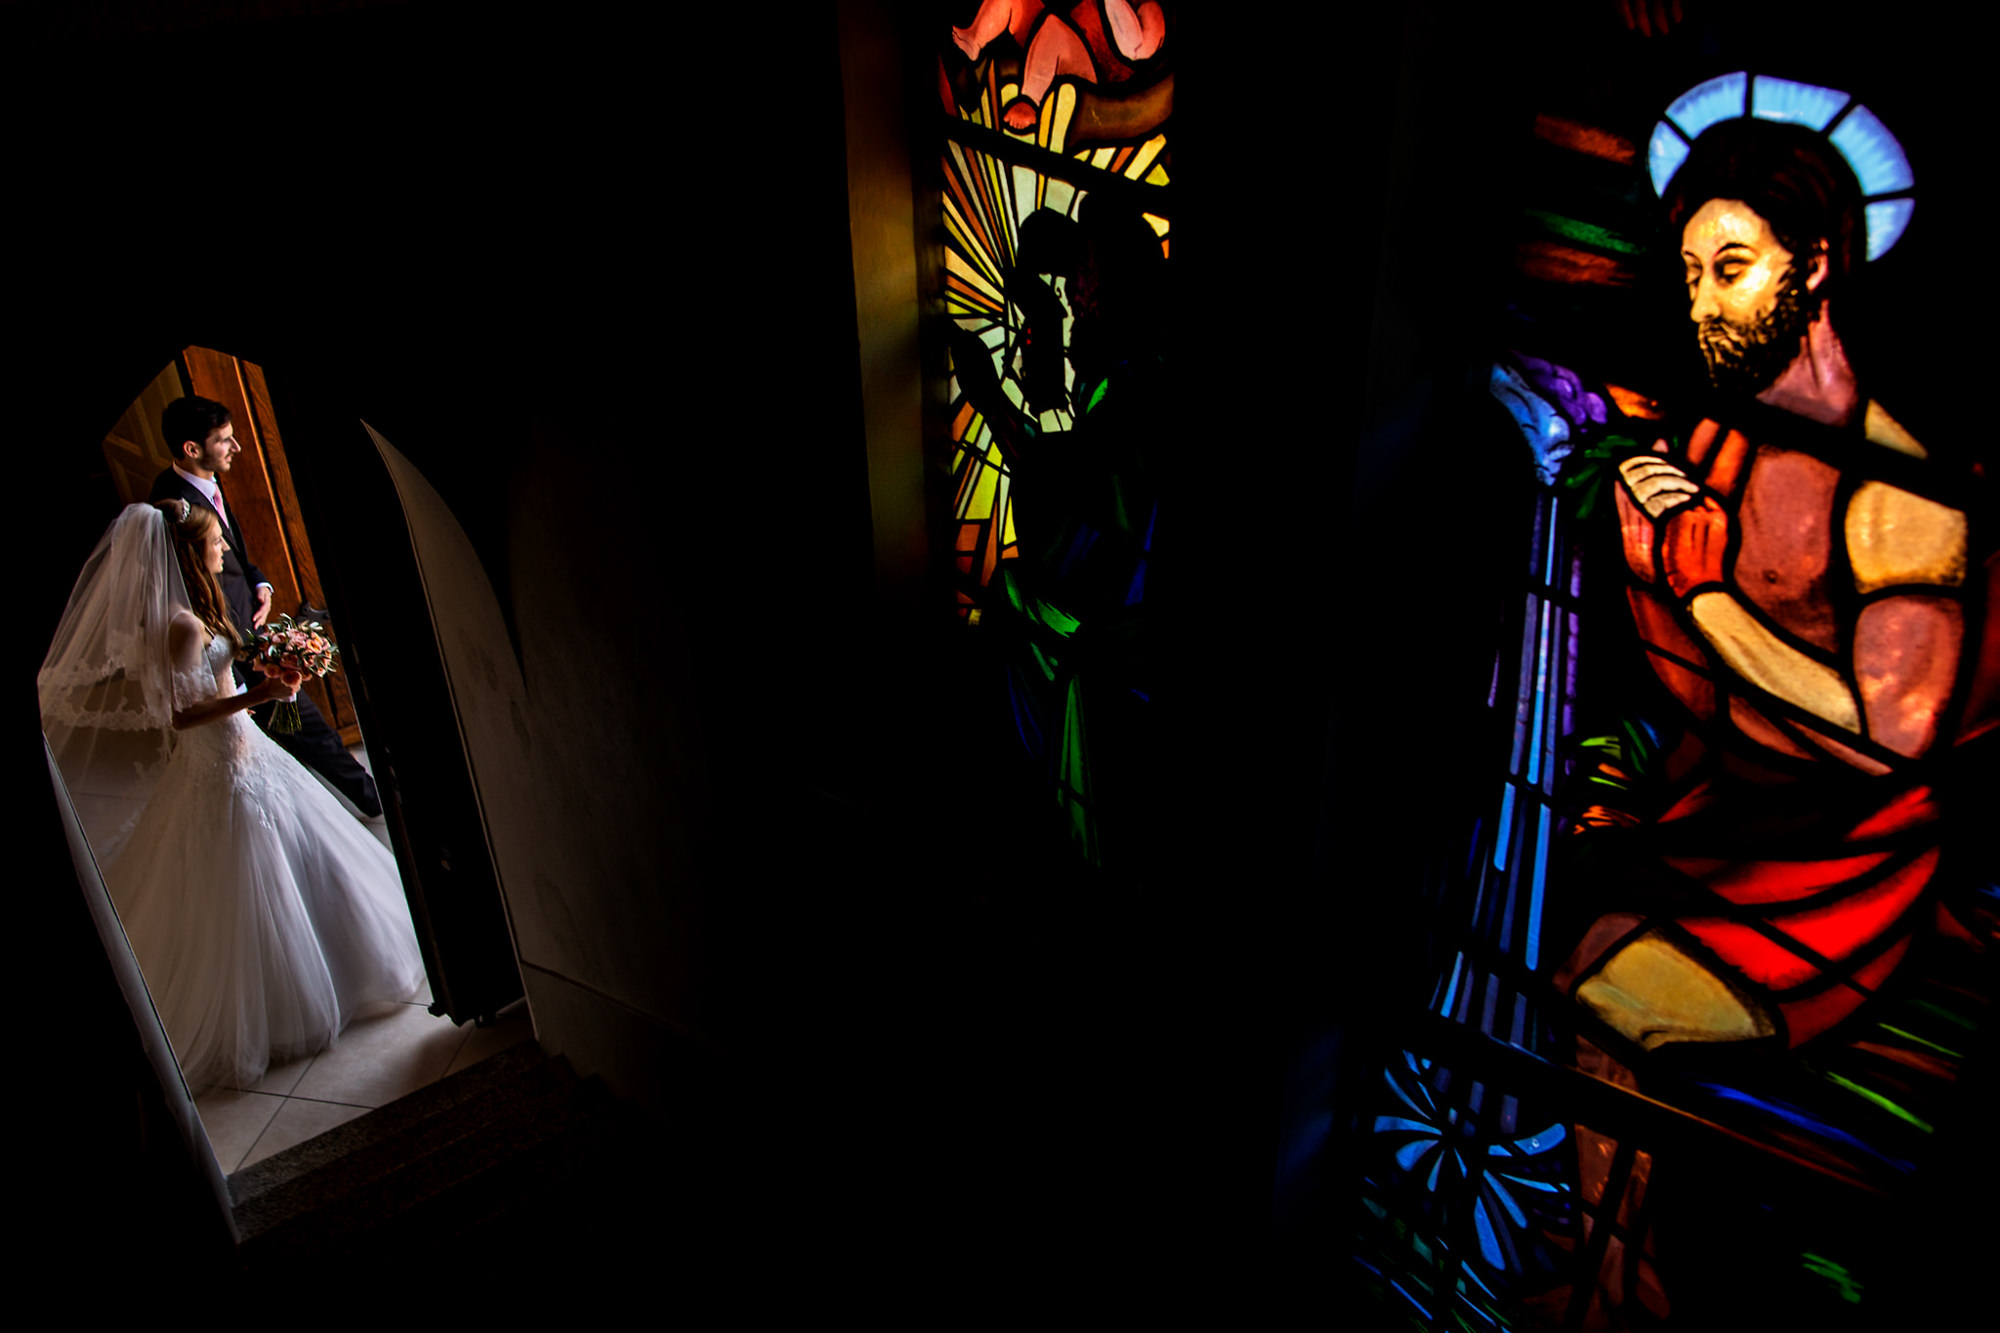 couple-exits-church-with-stained-glass-windows-worlds-best-wedding-photos-two-mann-canada-wedding-photographers